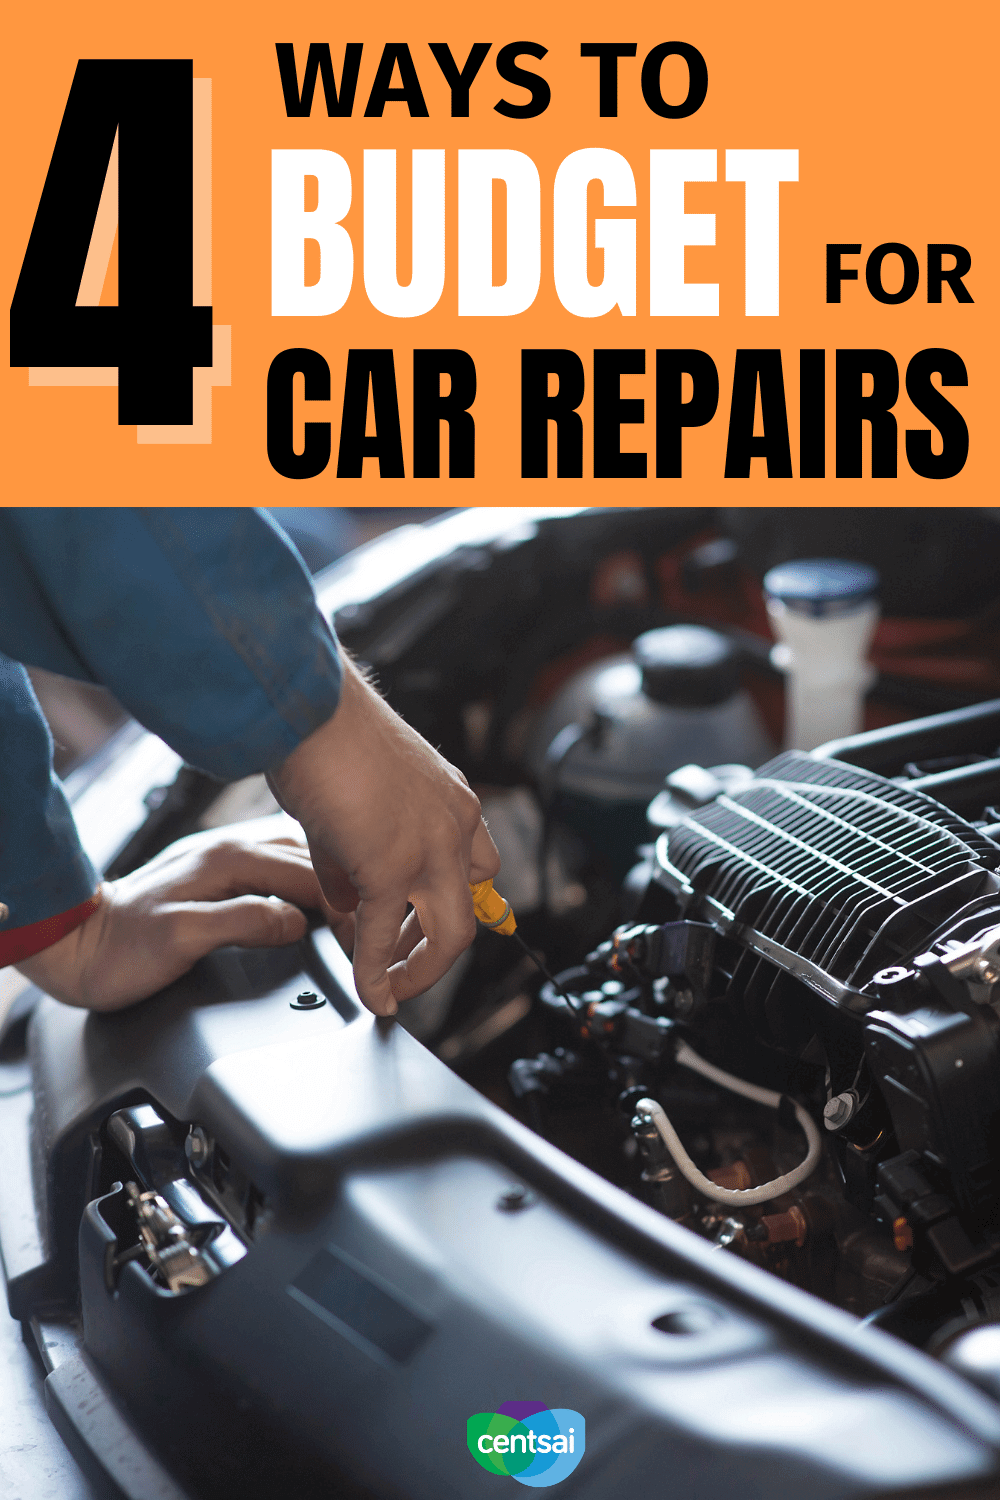 4 Ways to Budget for Car Repairs. While figuring out how to budget for car maintenance can be confusing, it isn't impossible. Watch this video to learn how much to save. #CentSai #carrepair #costofliving #frugaltips